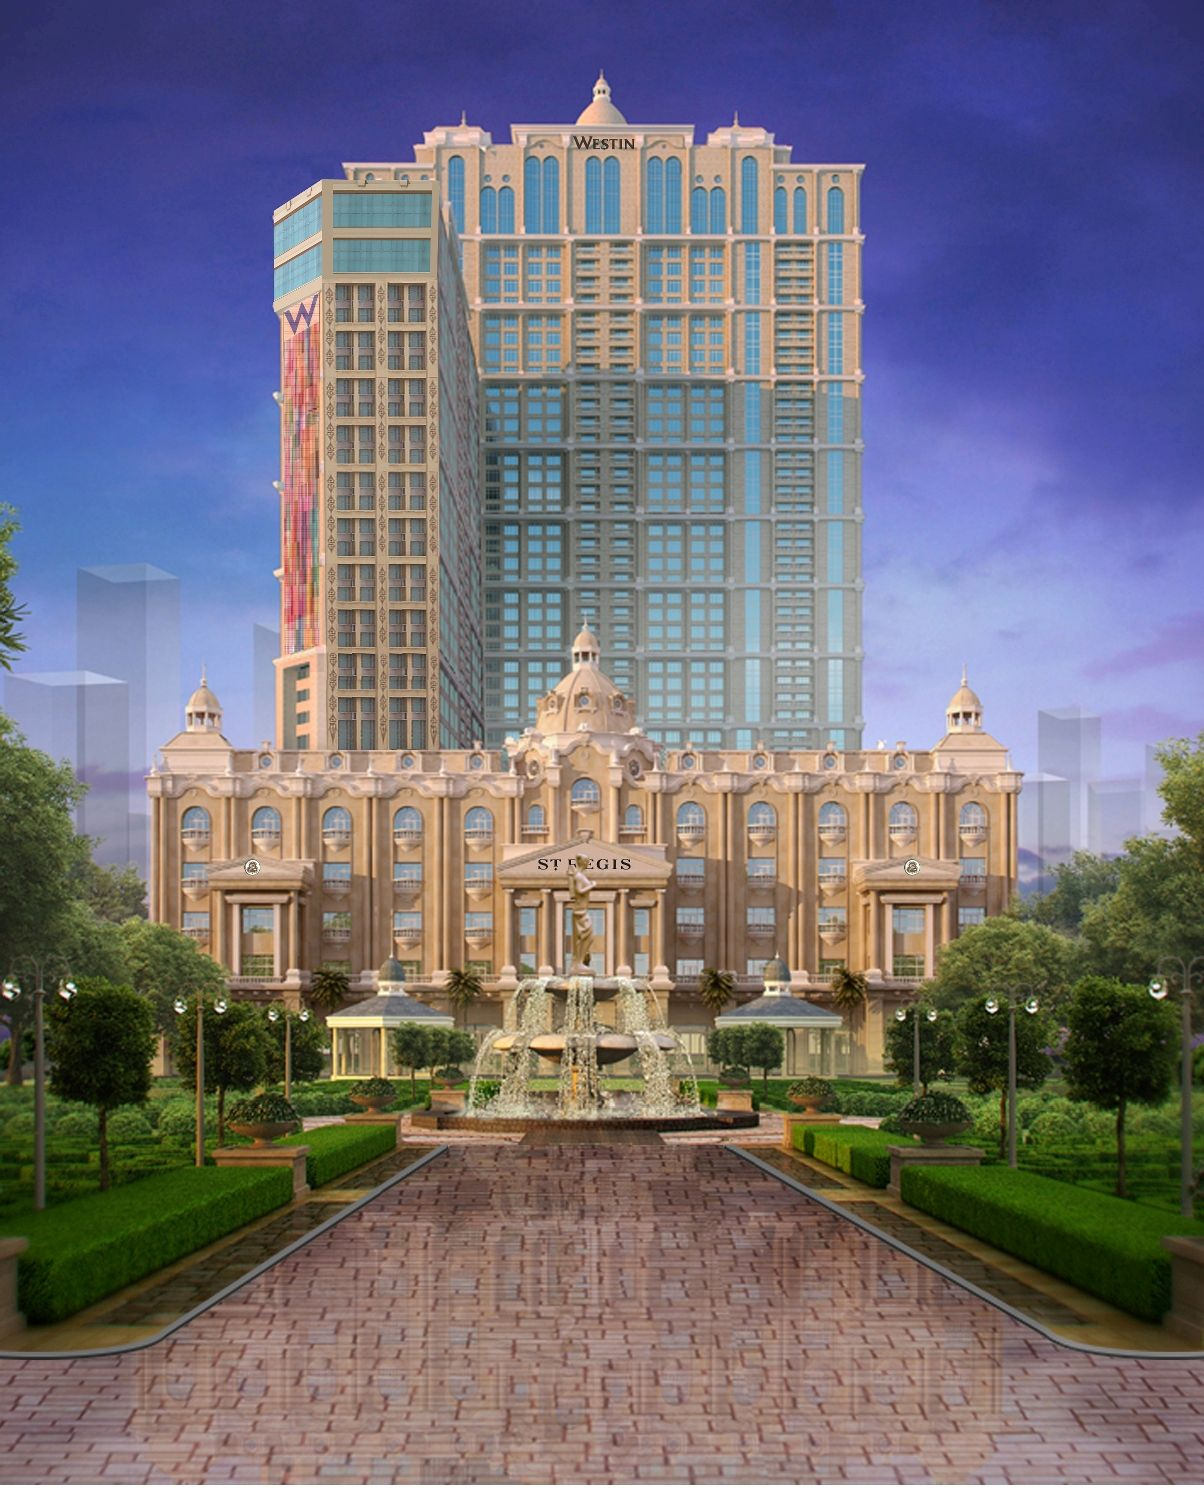 Starwoodhotels Not Opening Until Jul 1 2016 St Regis Starwood Hotels Dubai Pinterest Uae And United Arab Emirates